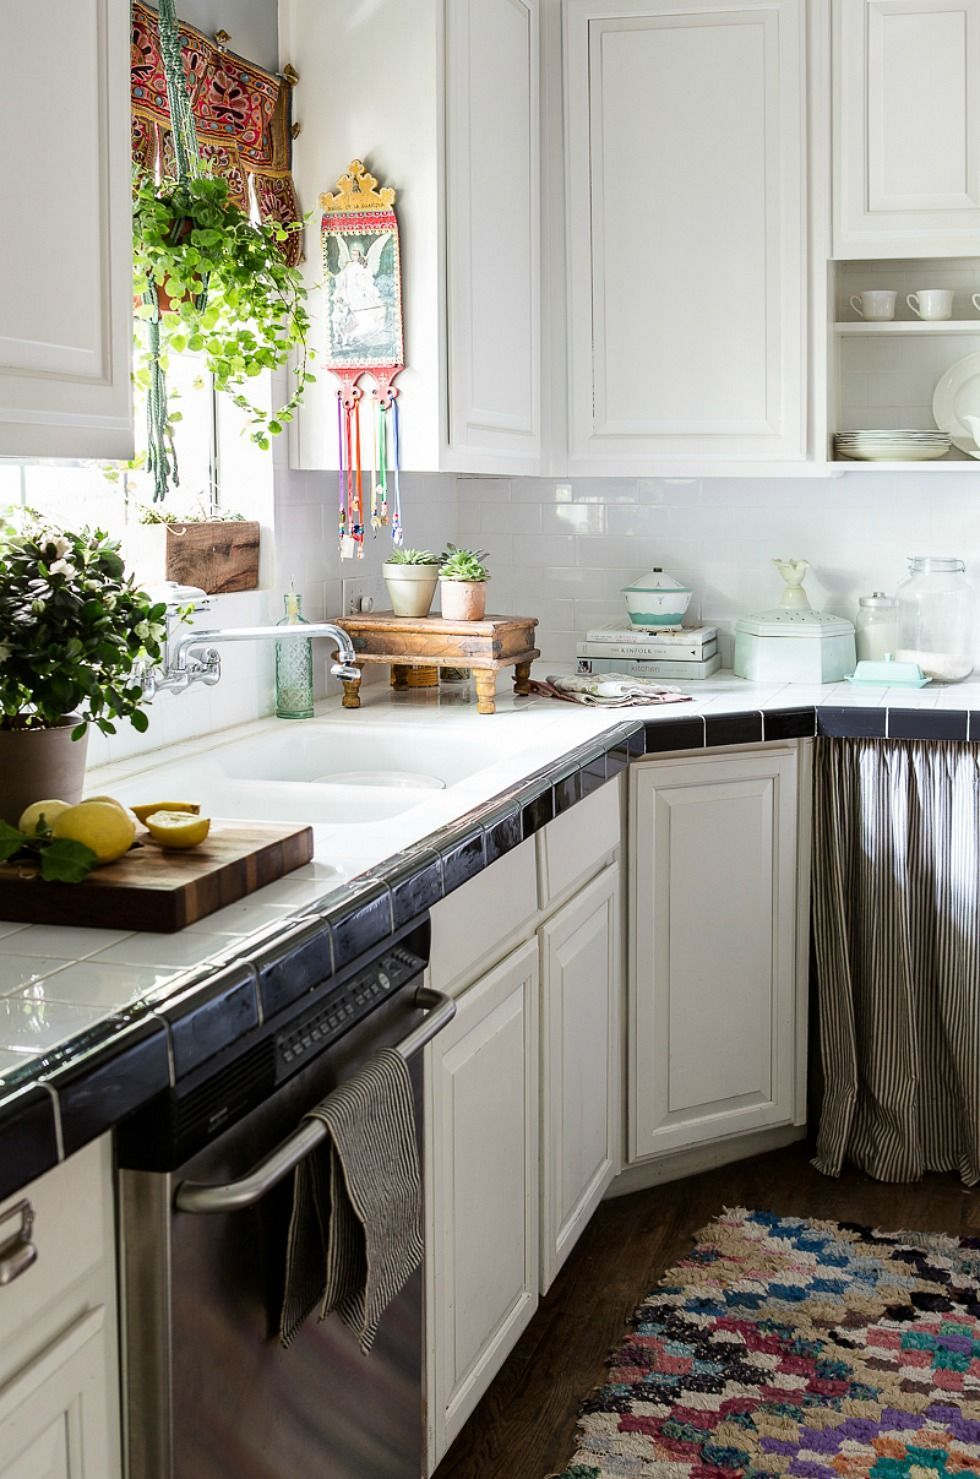 This Century Old Dallas Home Is Cozy And Eclectic In 2020 With Images Modern Kitchen Kitchen Cabinets Models Kitchen Decor